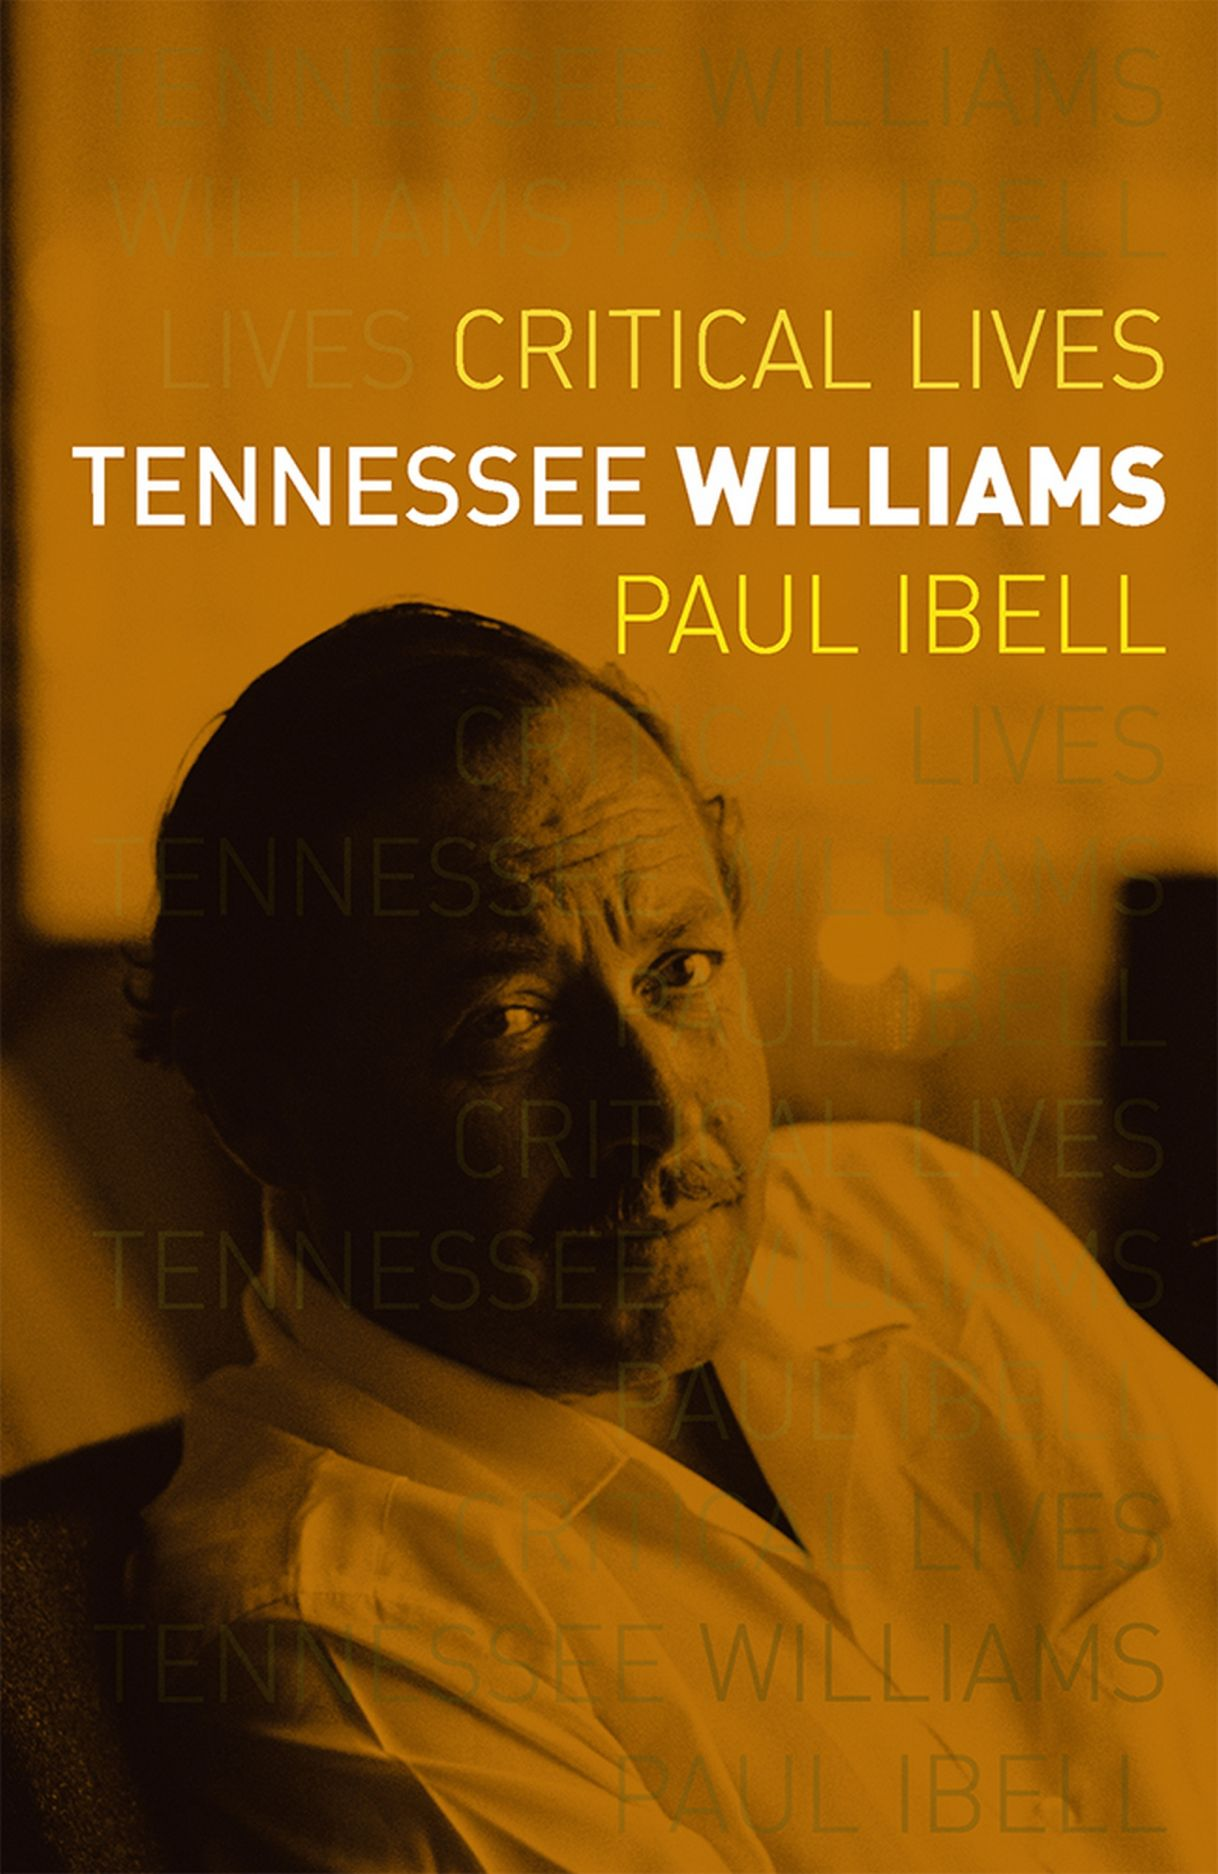 tennessee williams a great american author essay